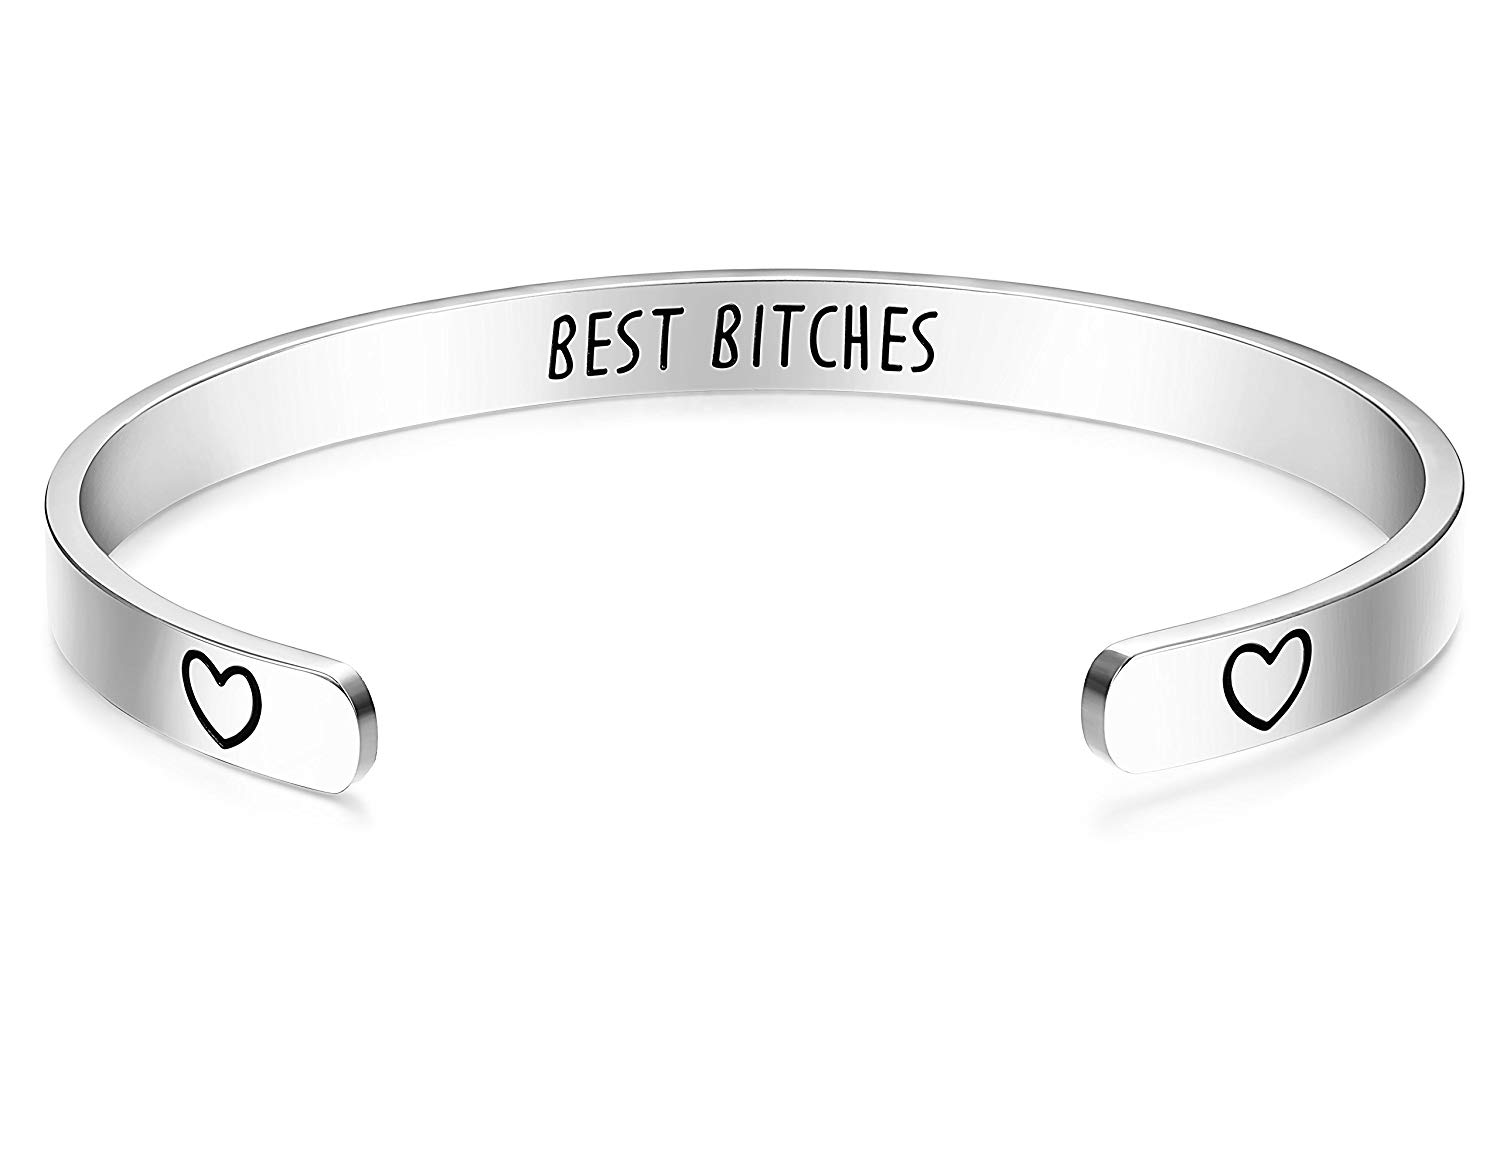 UNQJRY Friendship Cuff Bracelet for Women Inspirational Jewelry Gift for Girl Birthday